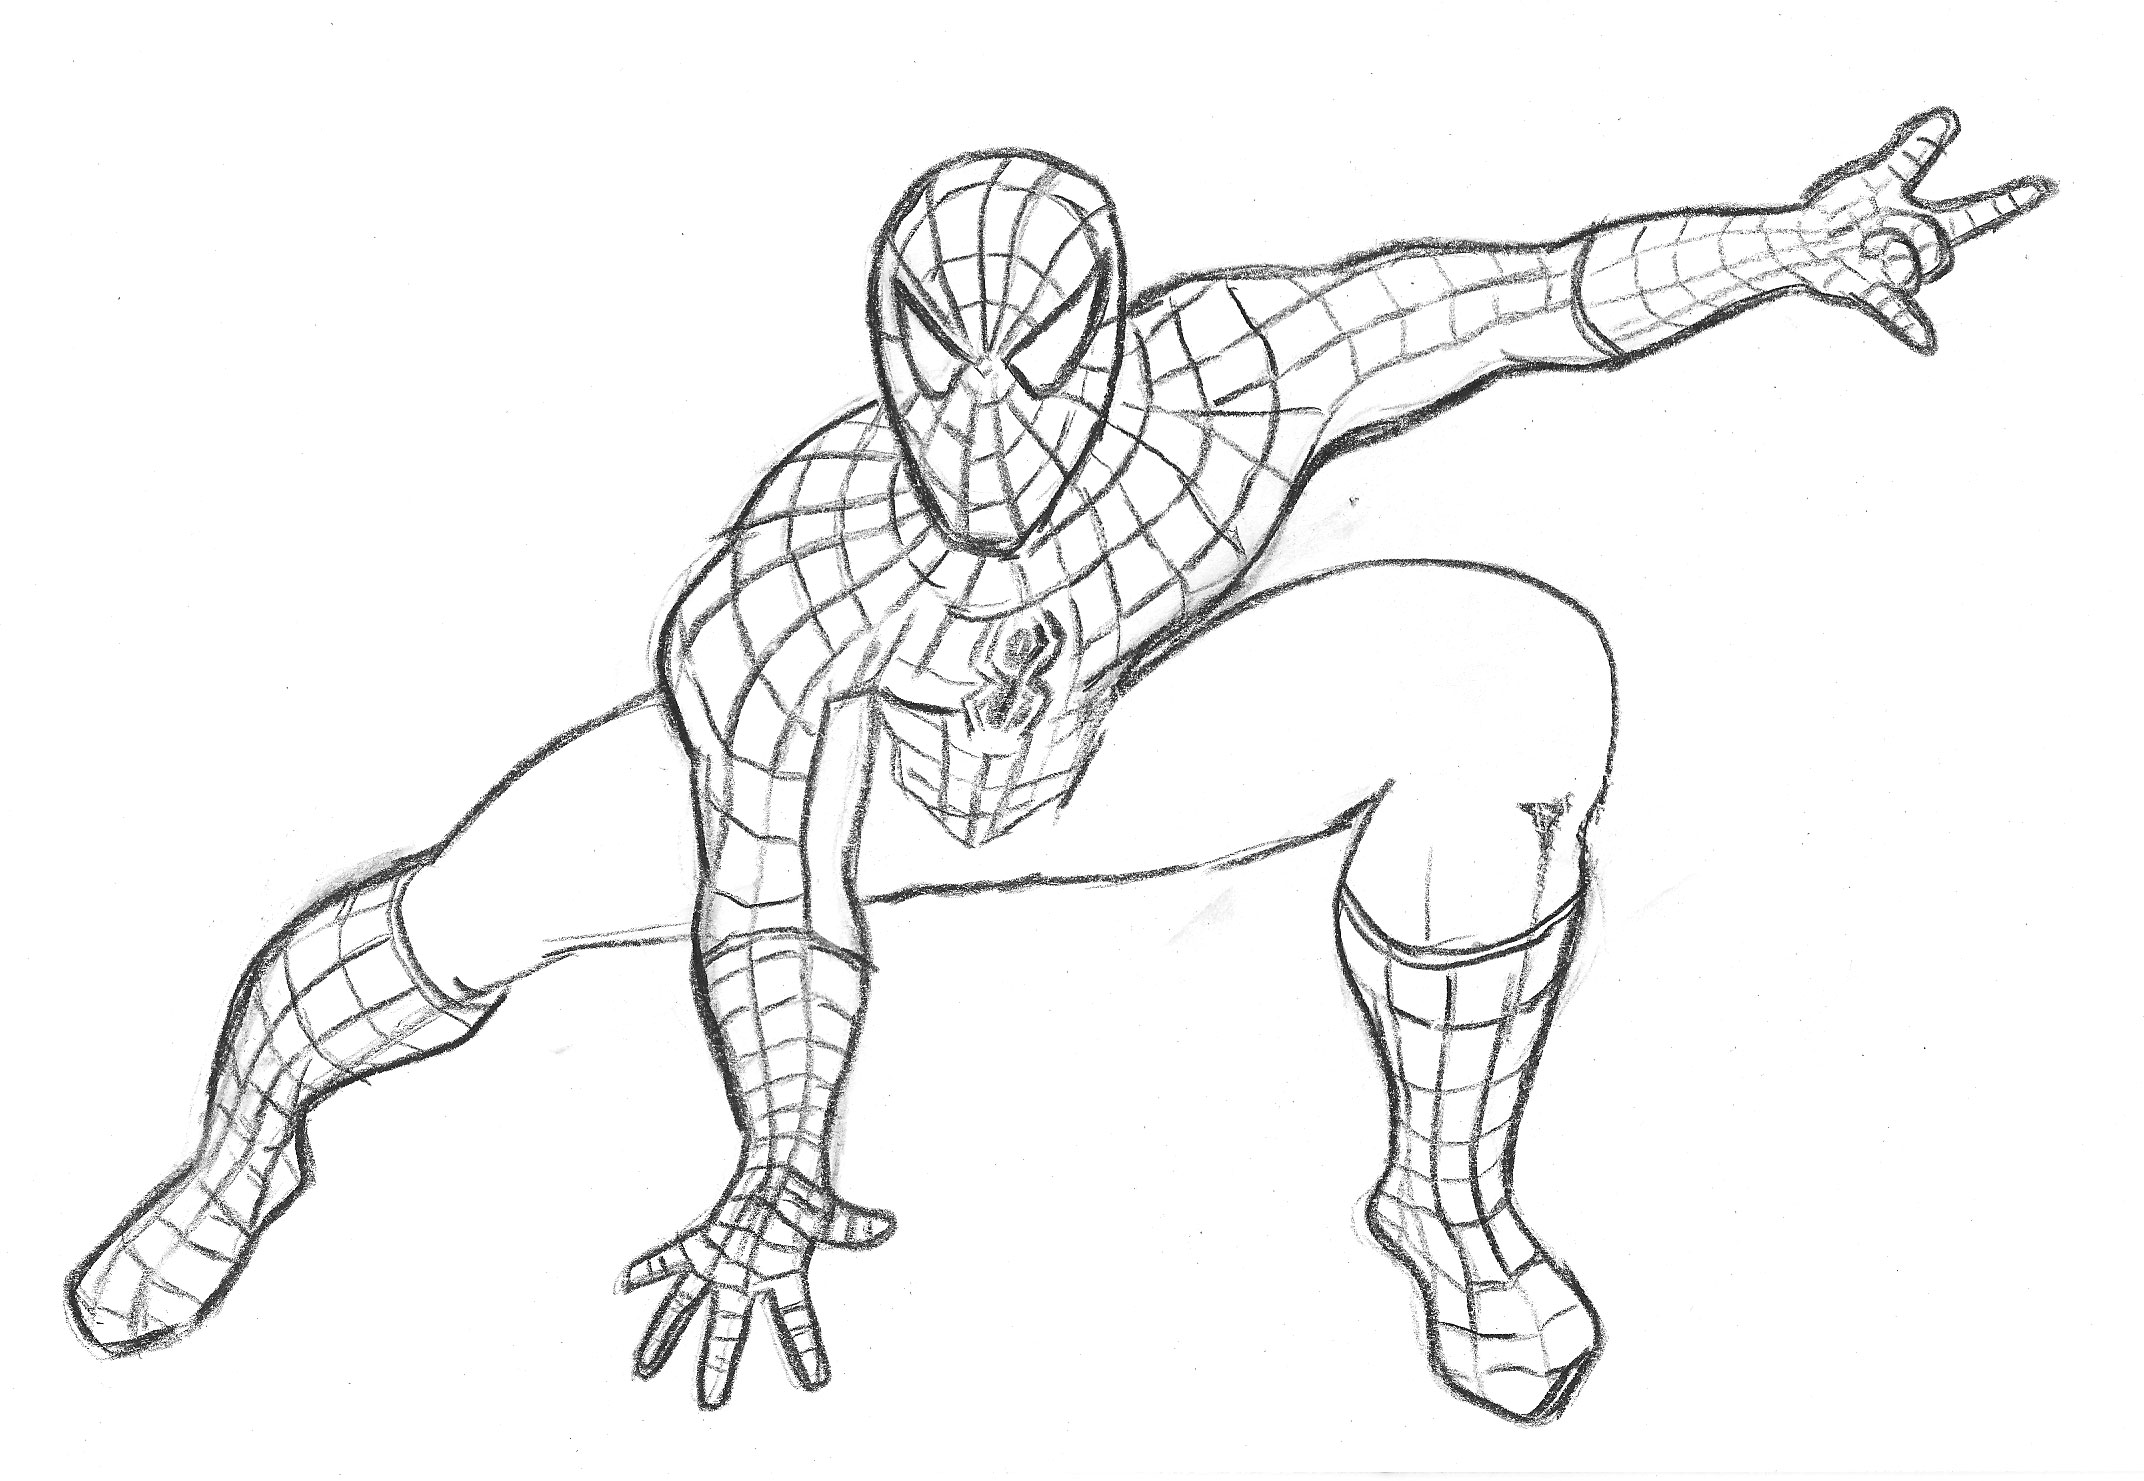 Coloriages imprimer spiderman num ro 499368 - Dessin spiderman facile ...